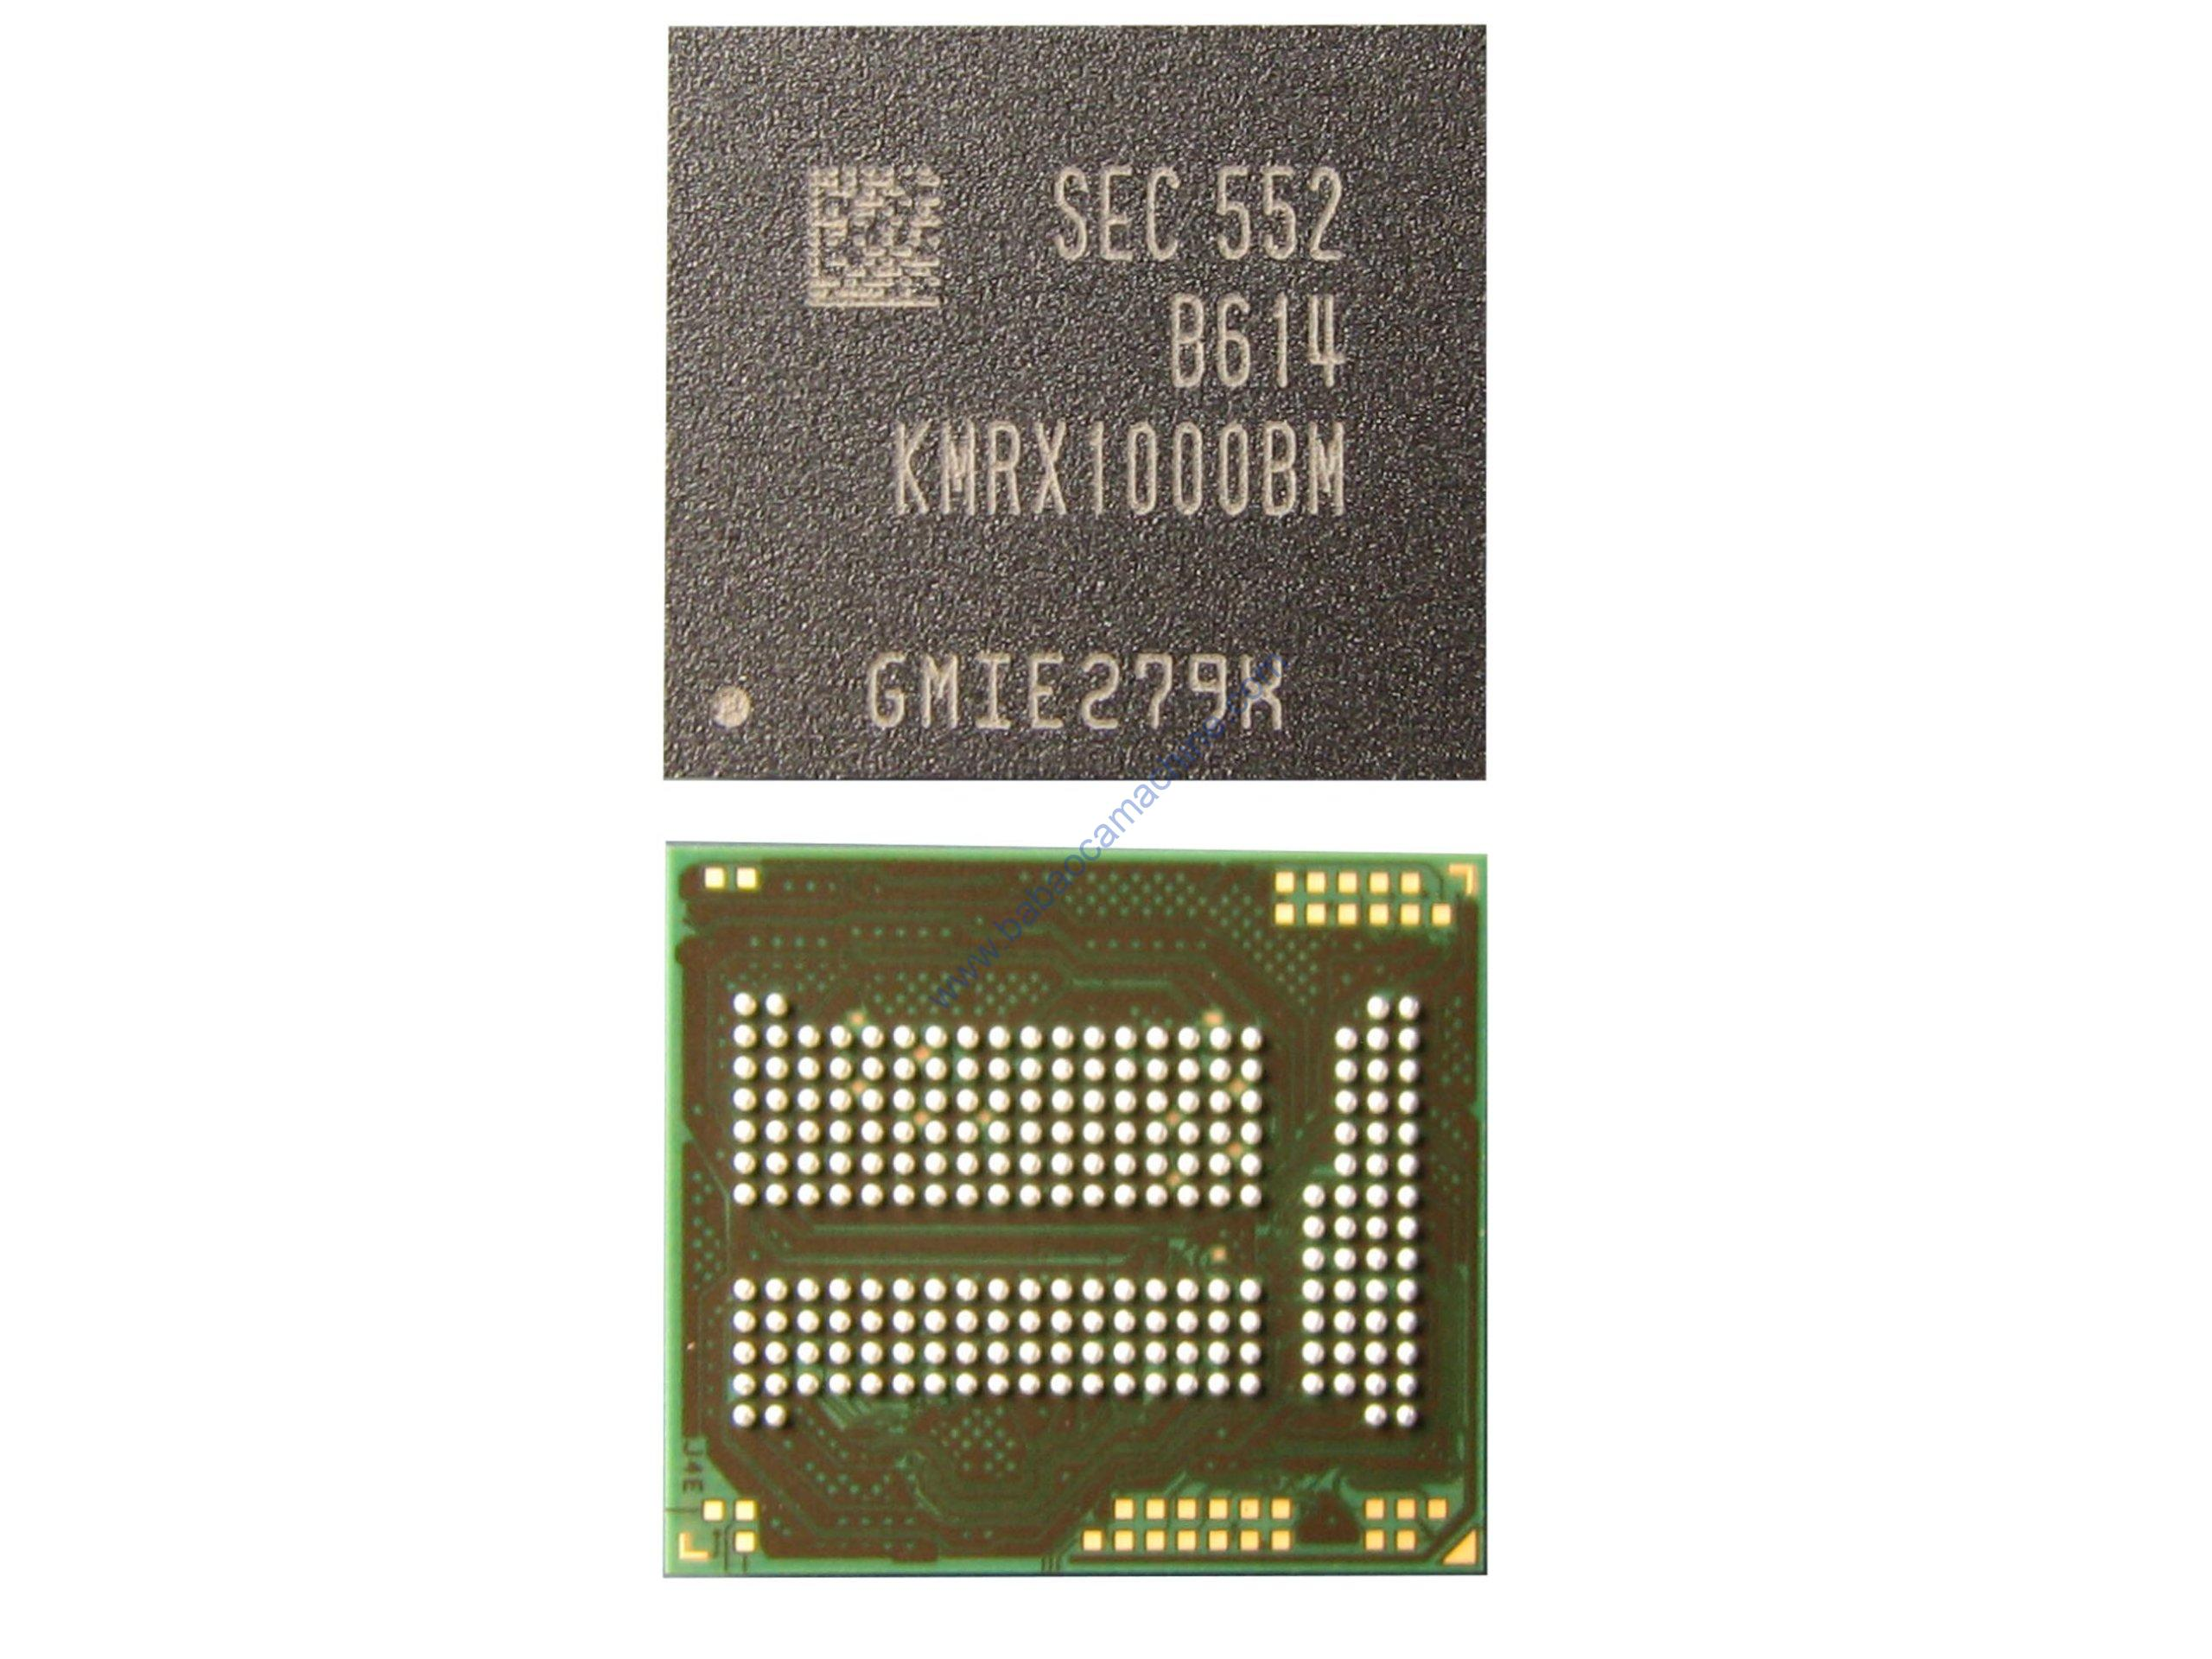 KMRX1000BM-B614 EMMC EMCP NAND Flash Memory IC Chip